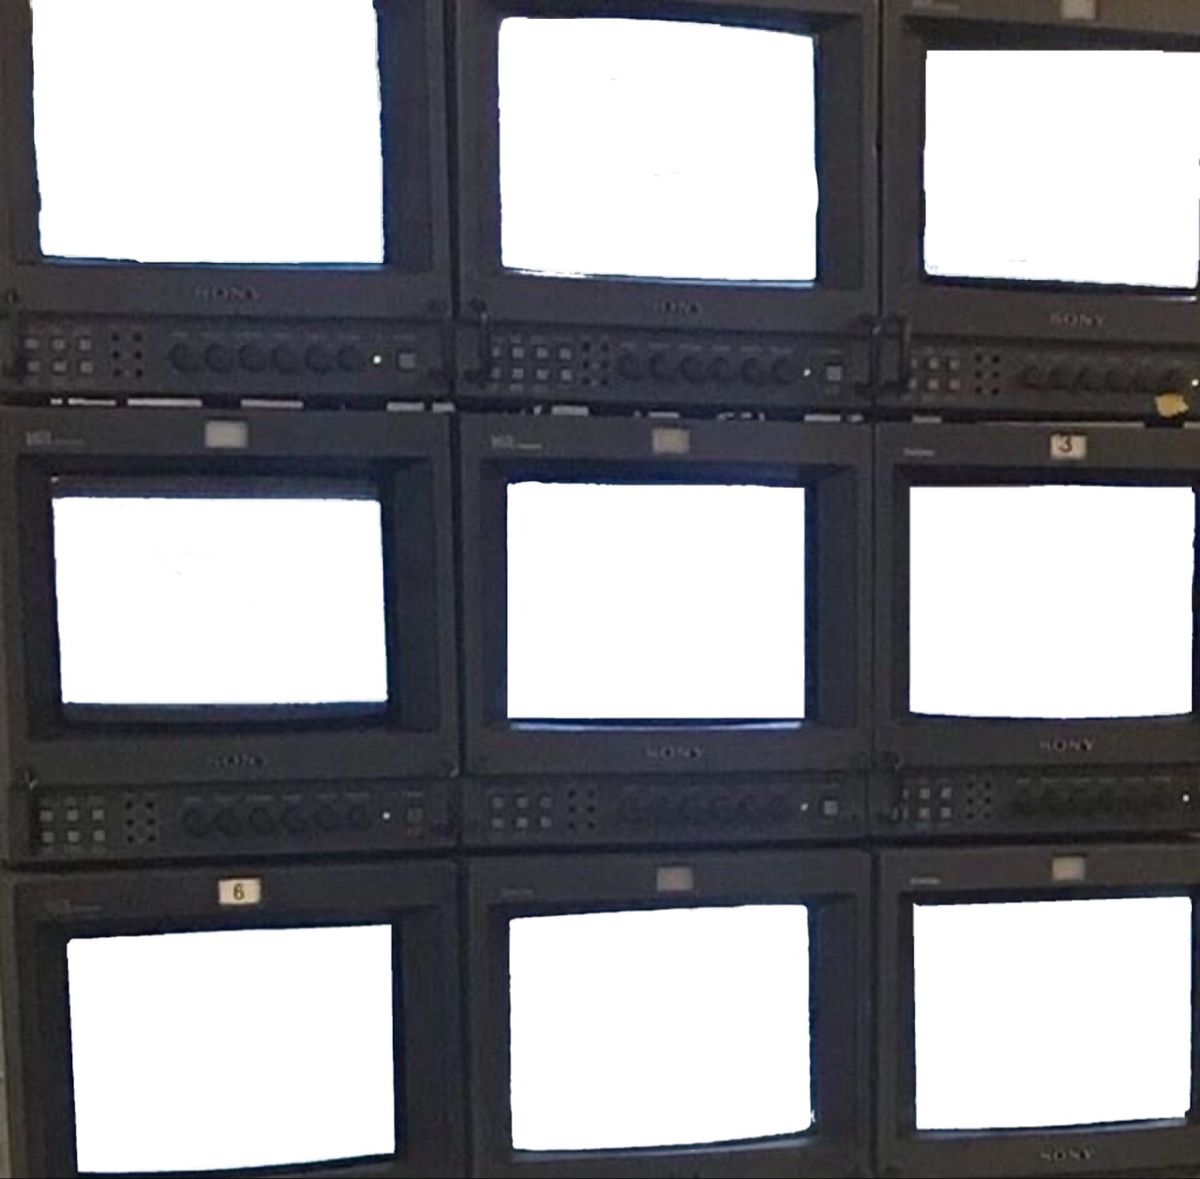 Tv Screen Png Overlay Cybercore Aesthetic Template Overlays Frame Edit